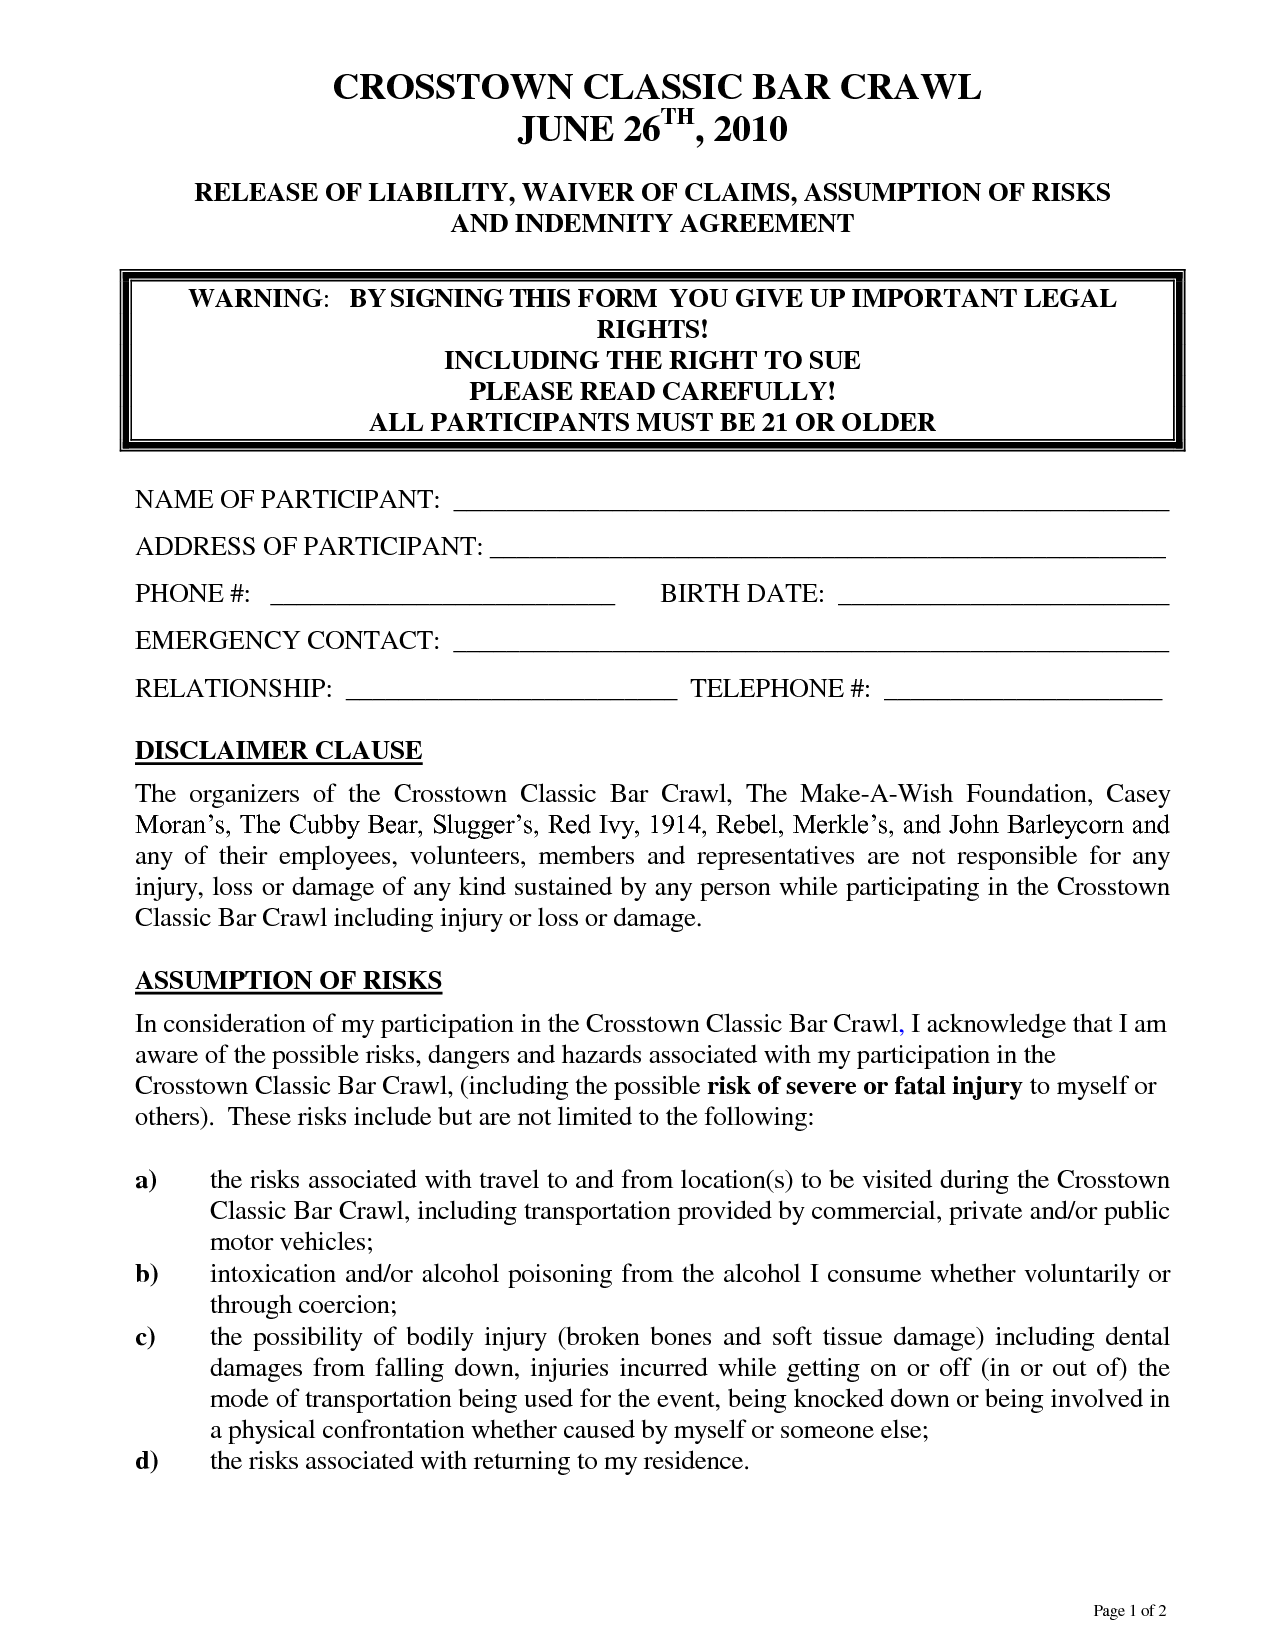 Sample Waiver Form  Coloring Pages  Sample Waiver  Legal